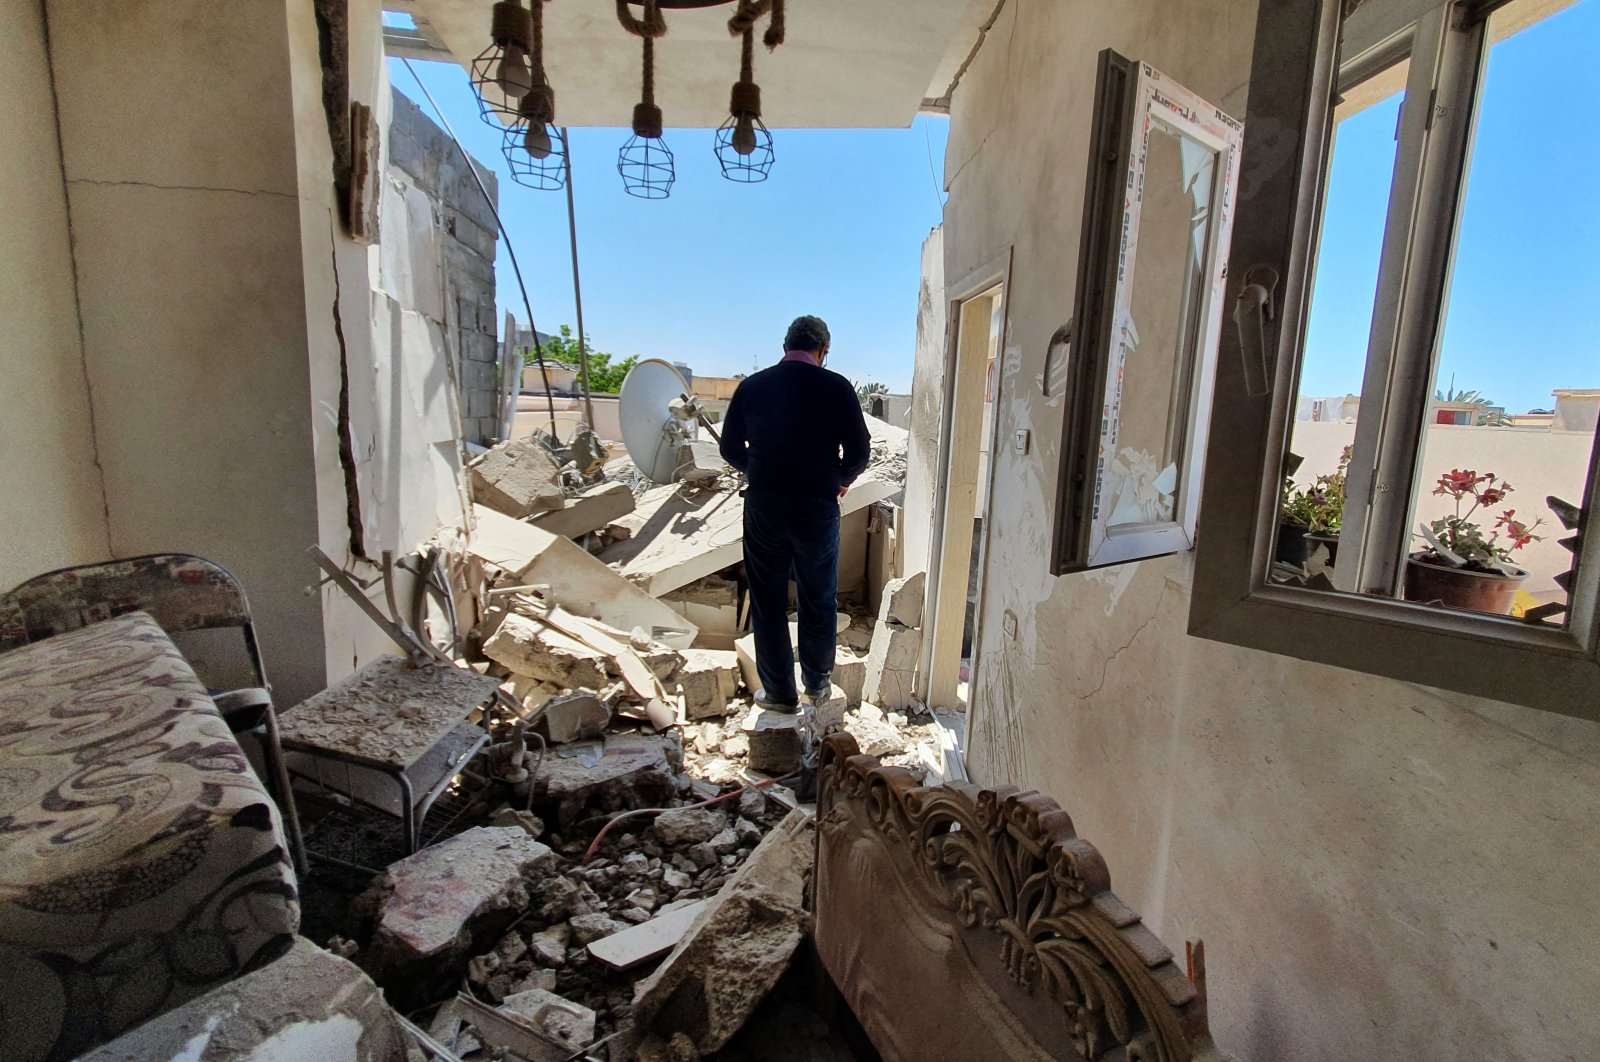 A resident walks amidst the rubble of a building that was damaged when forces loyal to putschist Gen. Khalifa Haftar shelled the residential neighborhood of Znatah in the Libyan capital Tripoli, held by the U.N.-recognized Government of National Accord (GNA), May 1, 2020. (AFP)